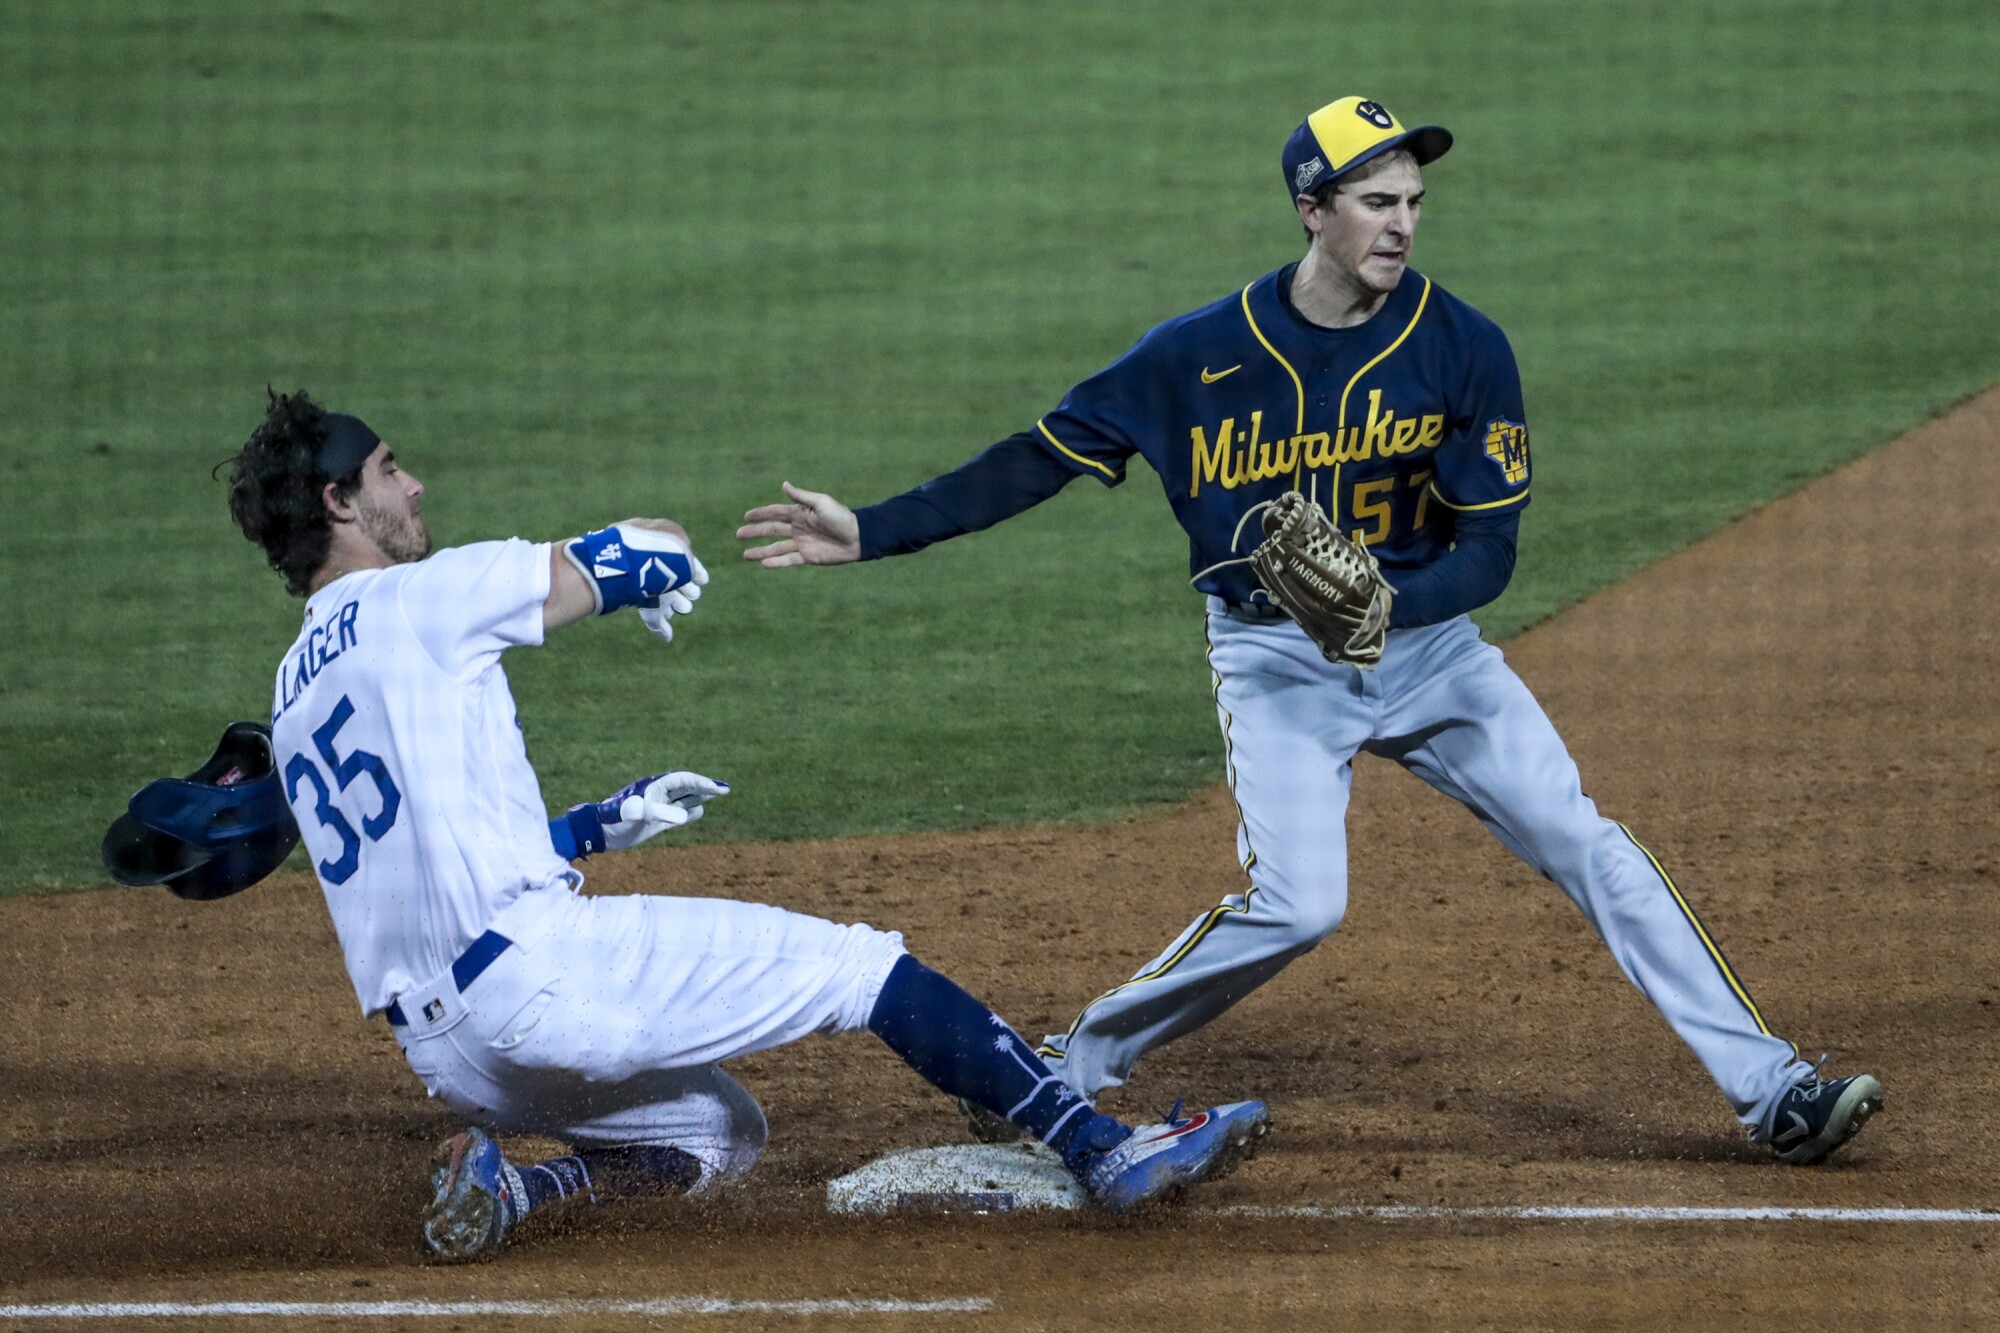 Milwaukee Brewers relief pitcher Eric Yardley, right, beats Dodgers center fielder Cody Bellinger to first base.